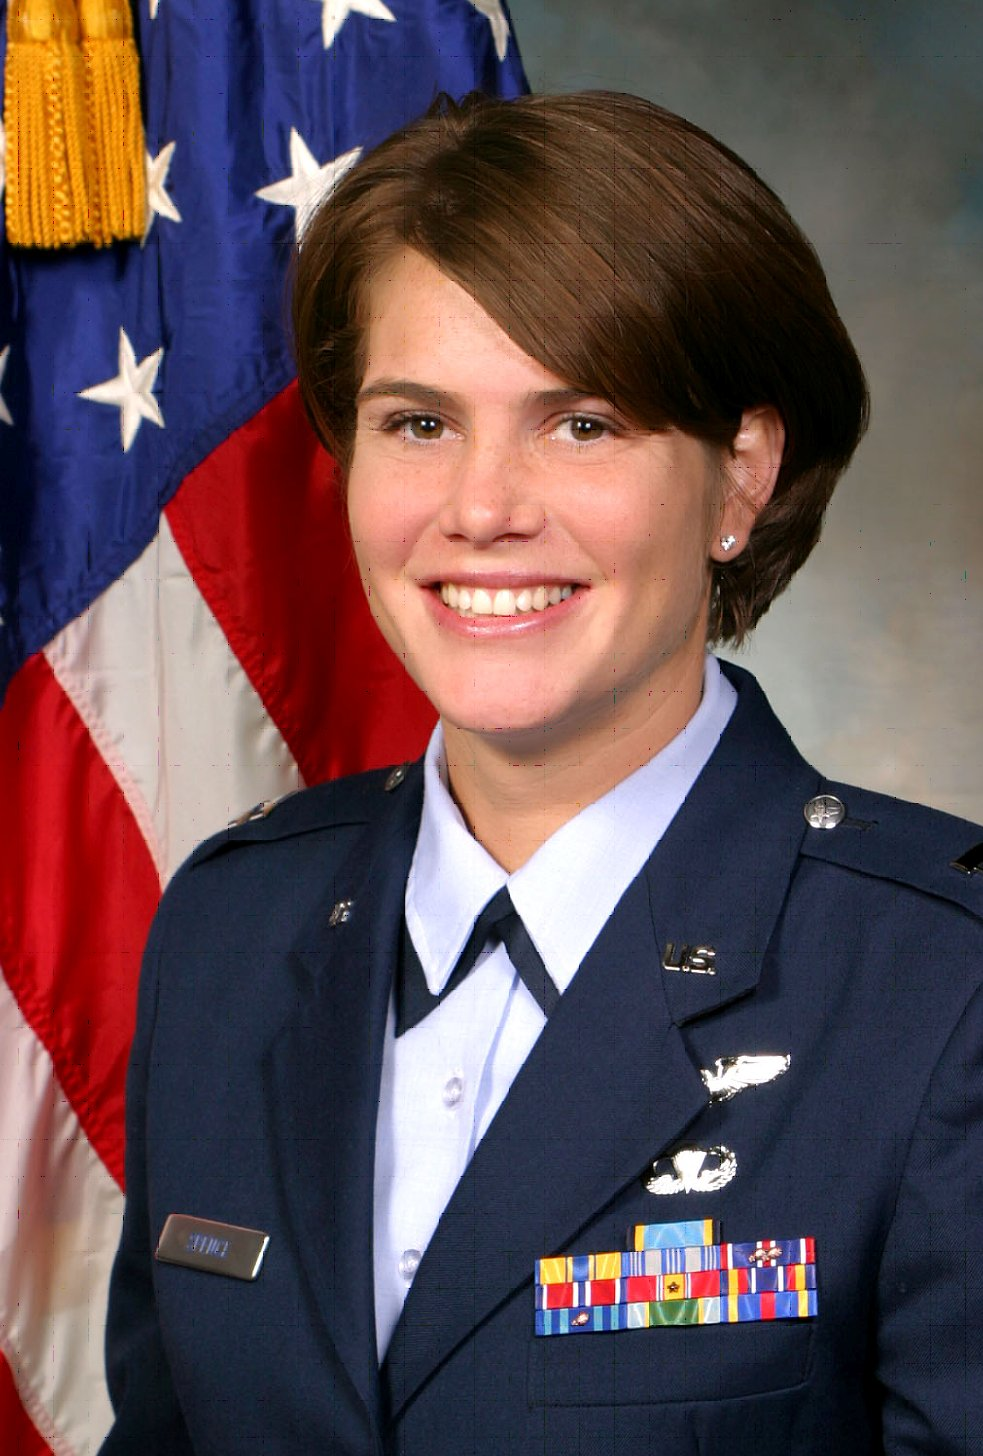 Major D'Anne Spence Completed Congressional Operations Certificate from TheCapitol.Net